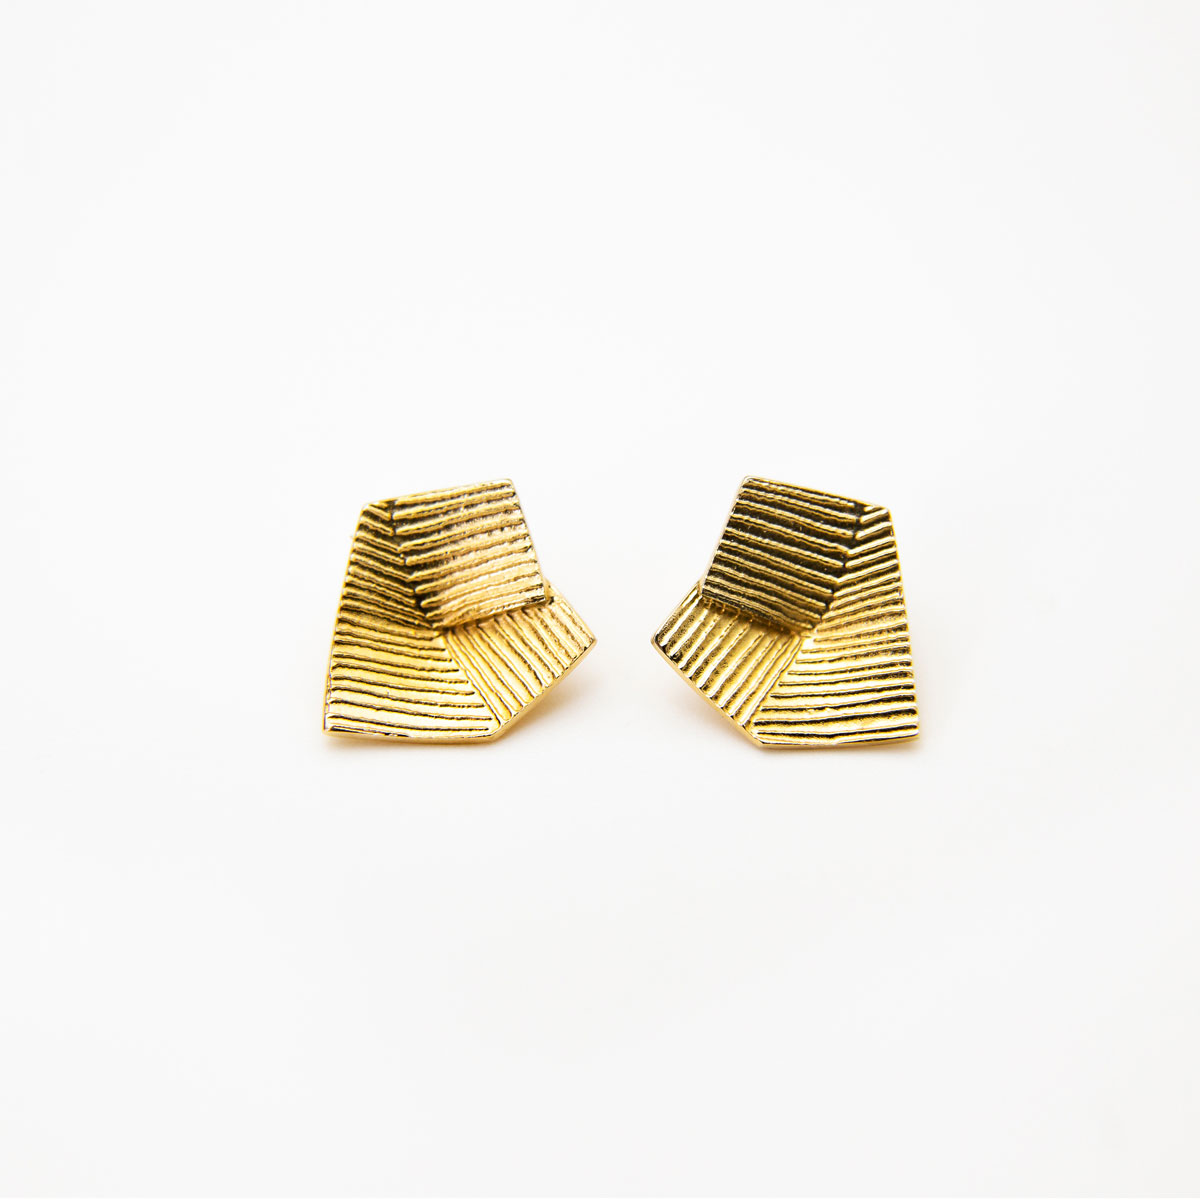 'Lines in Motion' Gold Earrings, Small